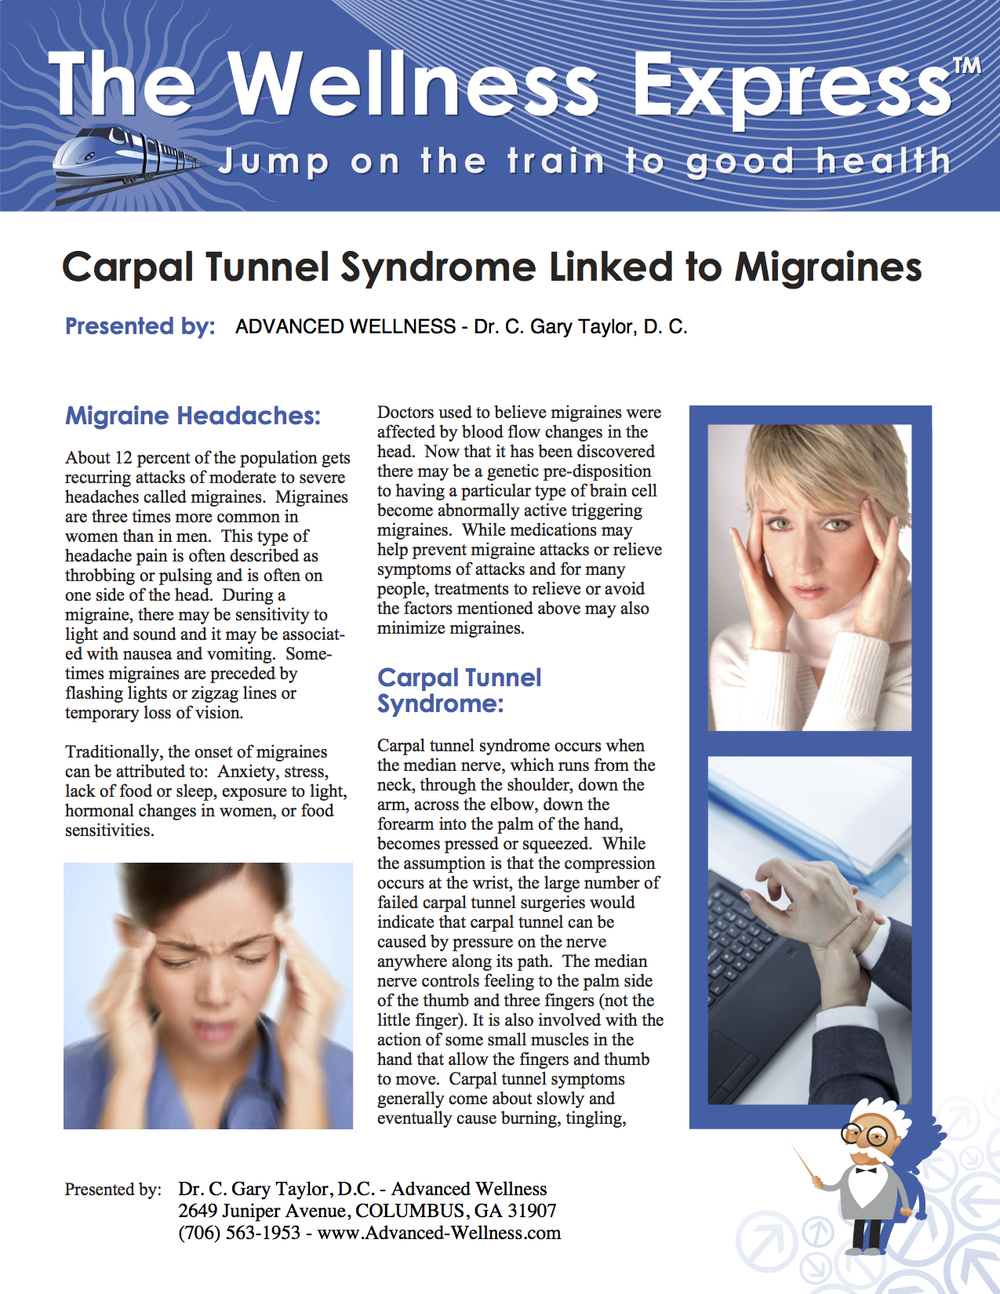 Weekly Newsletter: Carpal Tunnel Syndrome Linked to Migraines